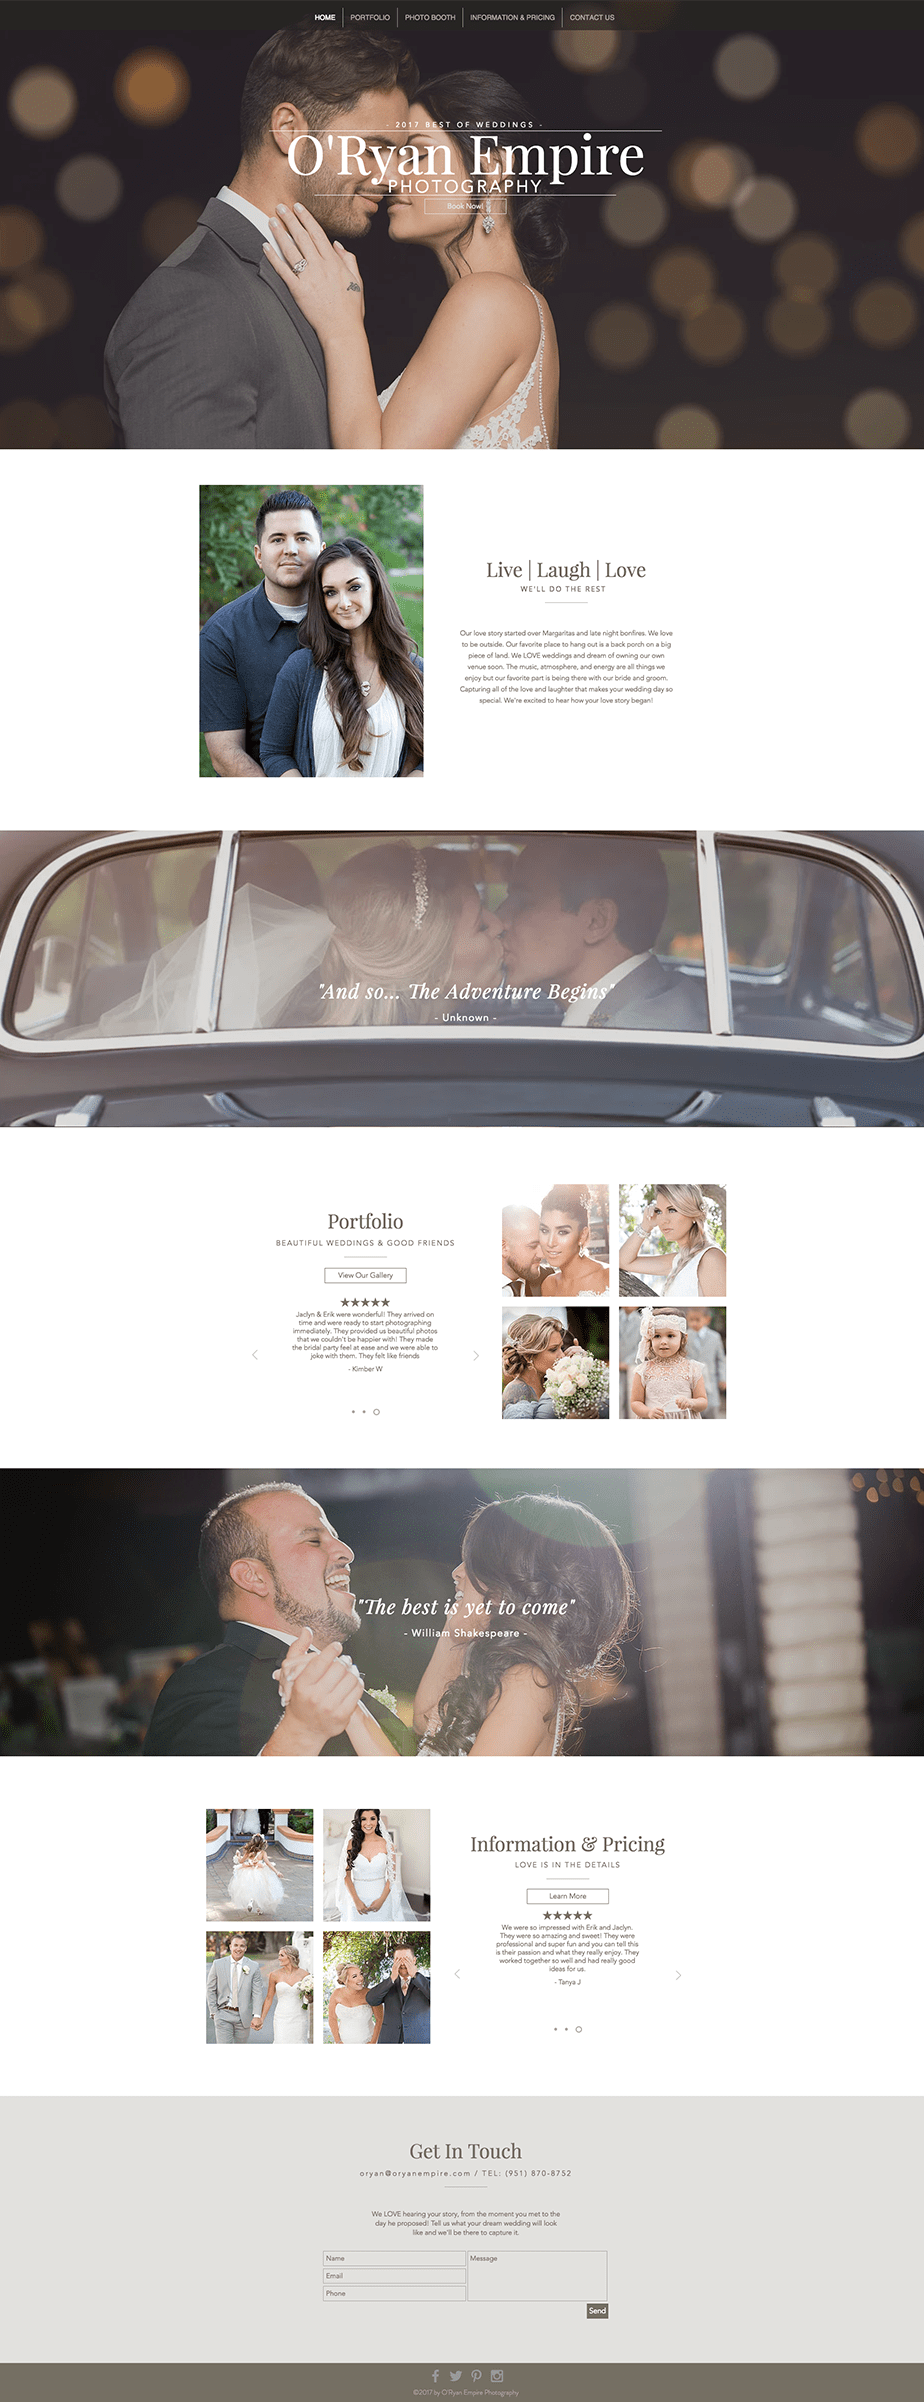 Stunning online portfolio by wedding photographer O'Ryan Empire